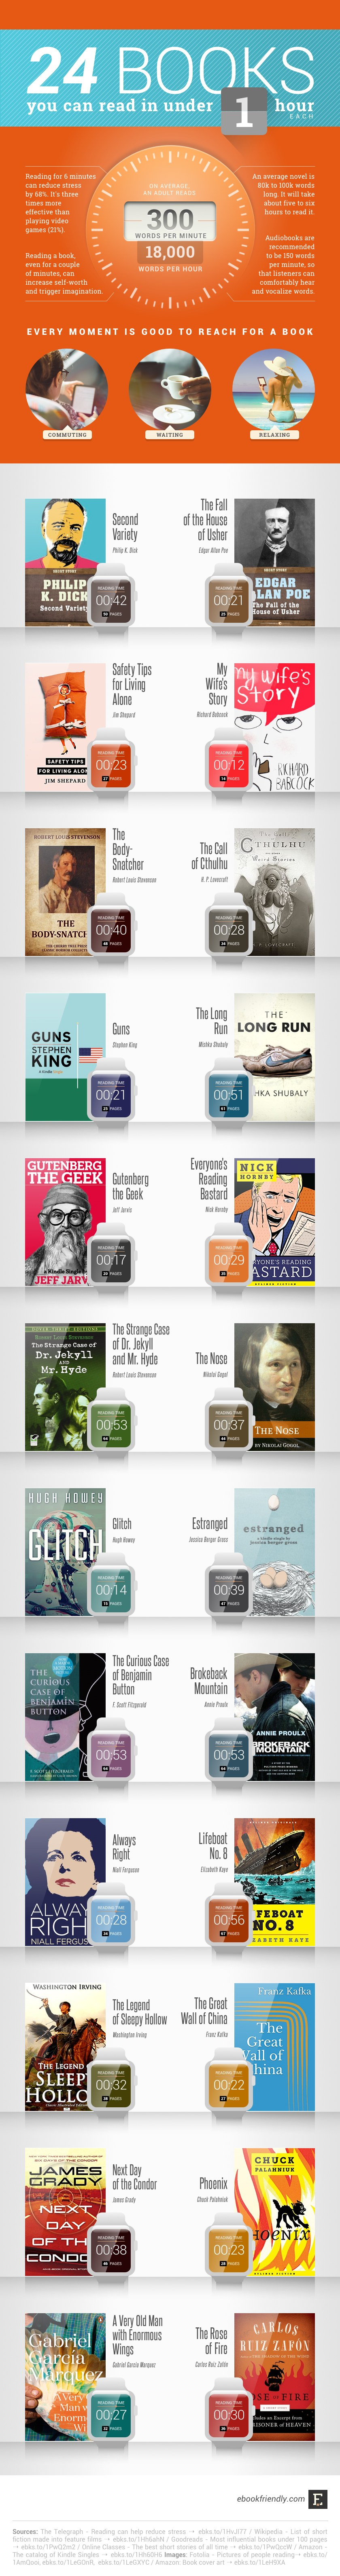 24 books to read in under an hour (infographic)   Ebook Friendly